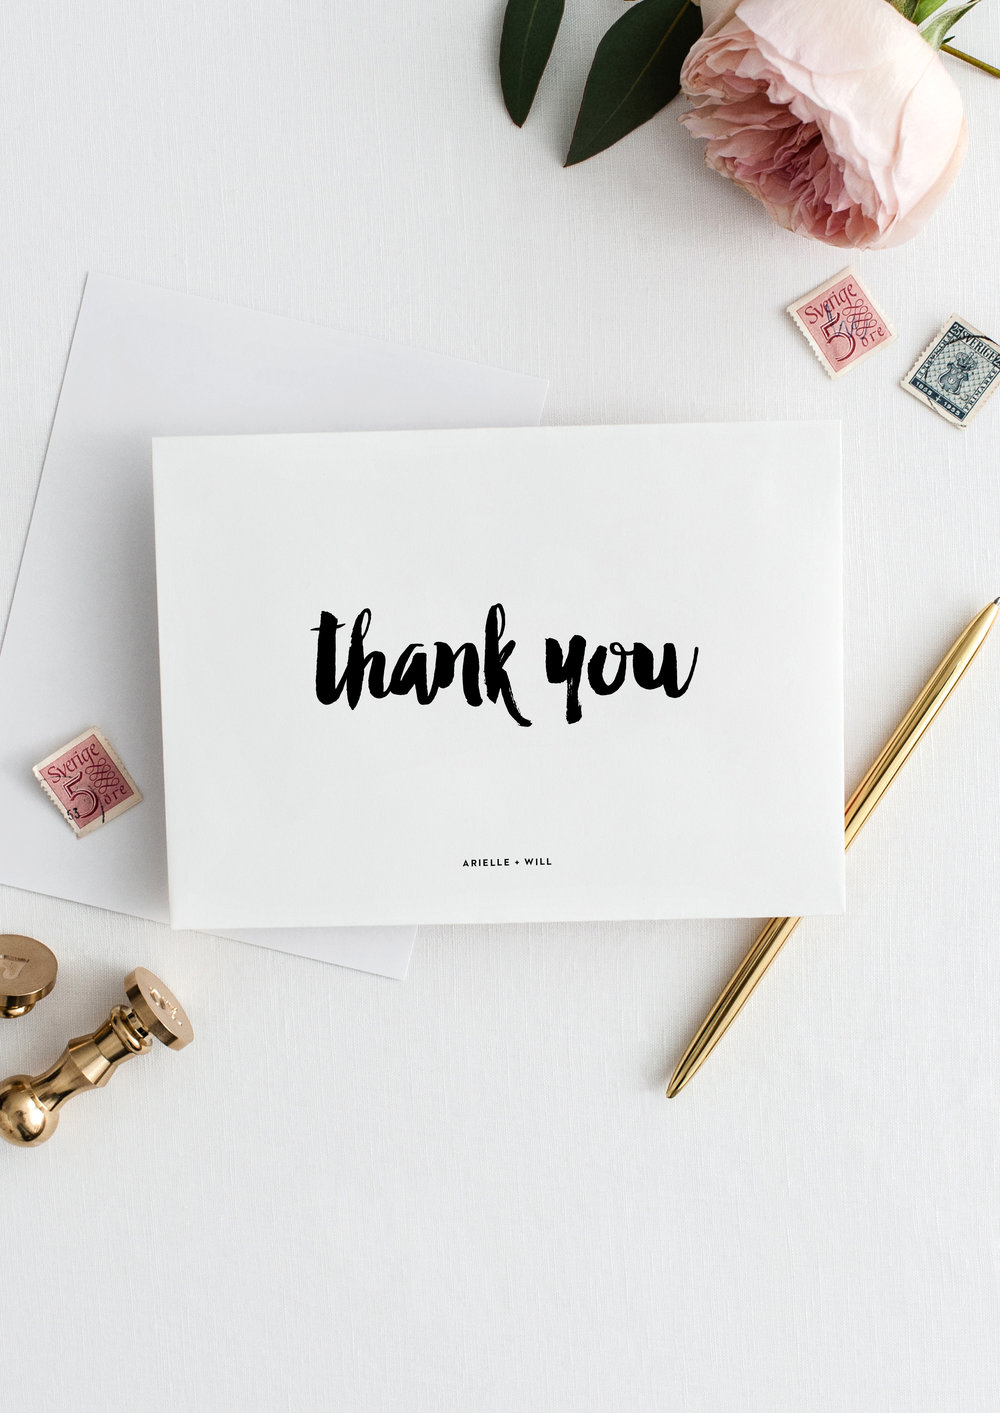 arielle and will modern creative wedding thank you card